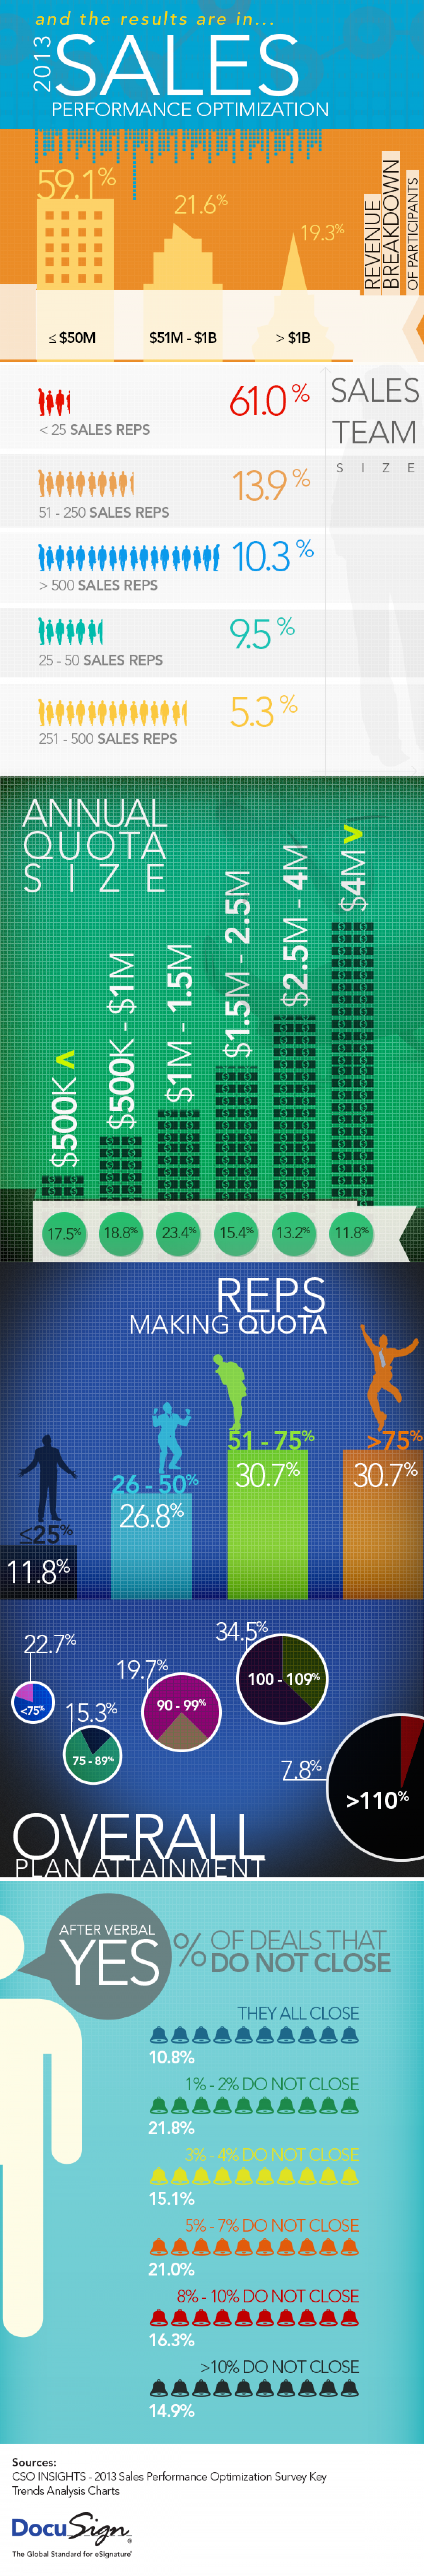 2013 Sales Performance Optimization Infographic